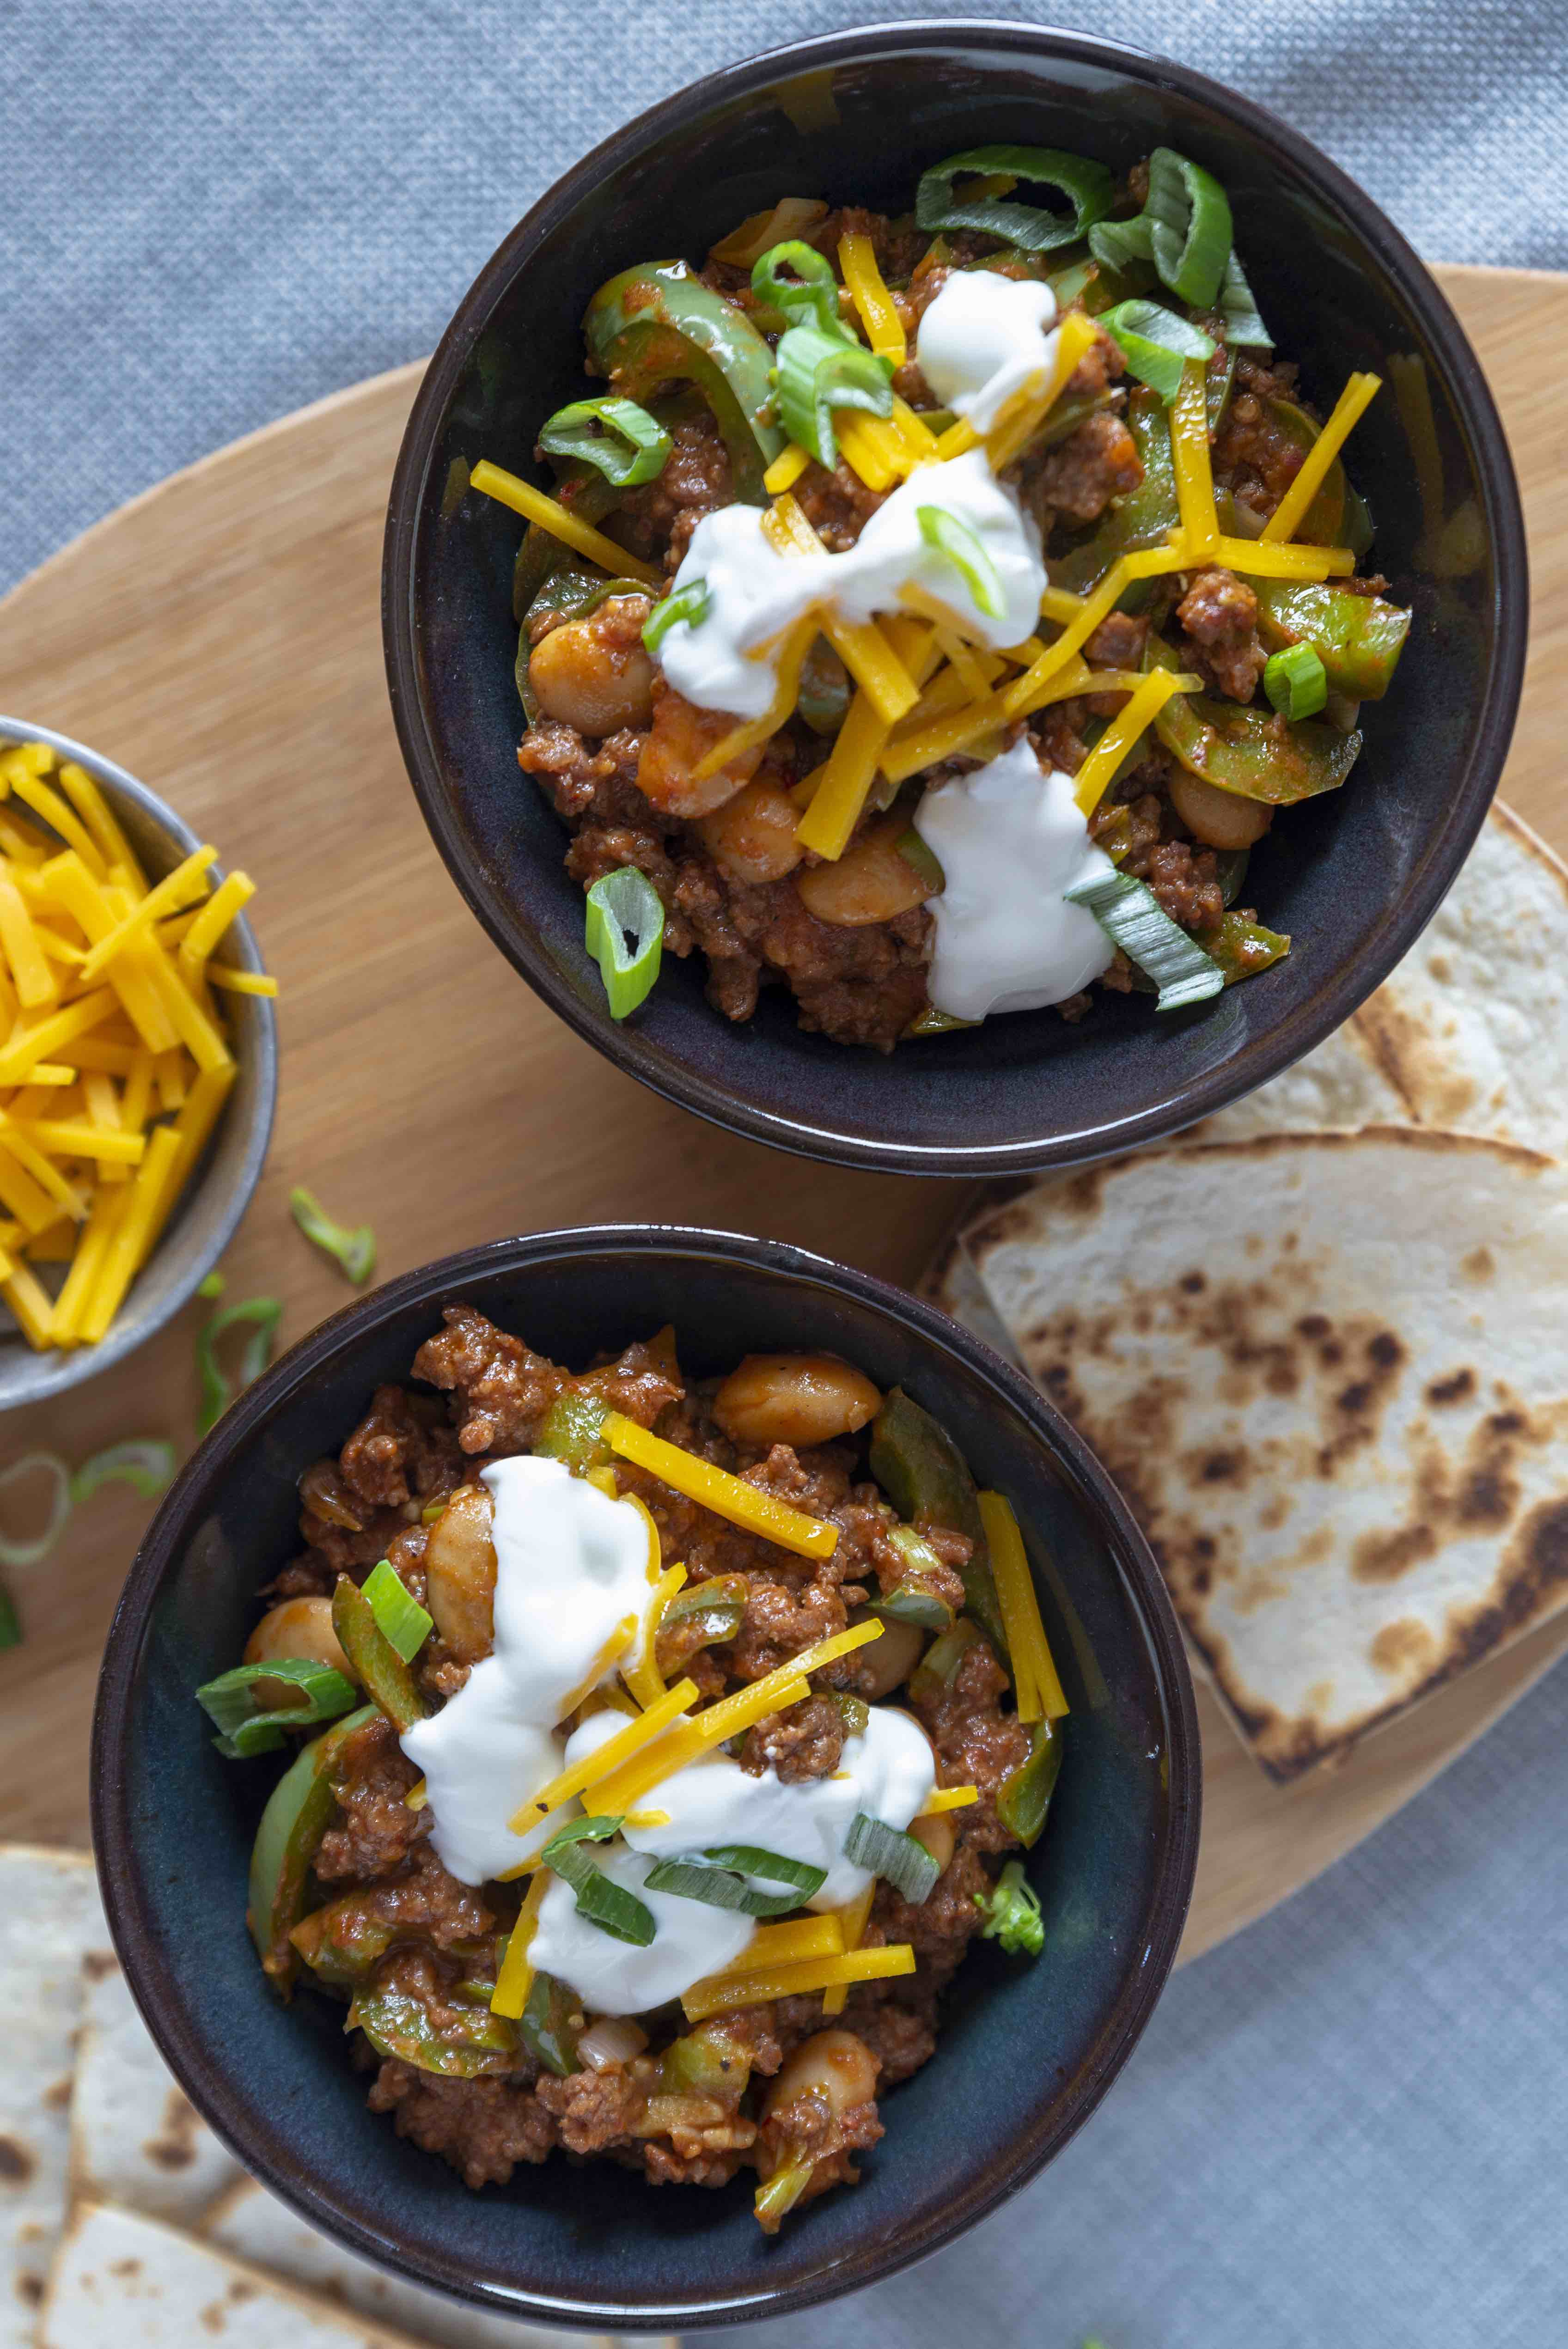 Cooked By Me - Classic beef chili